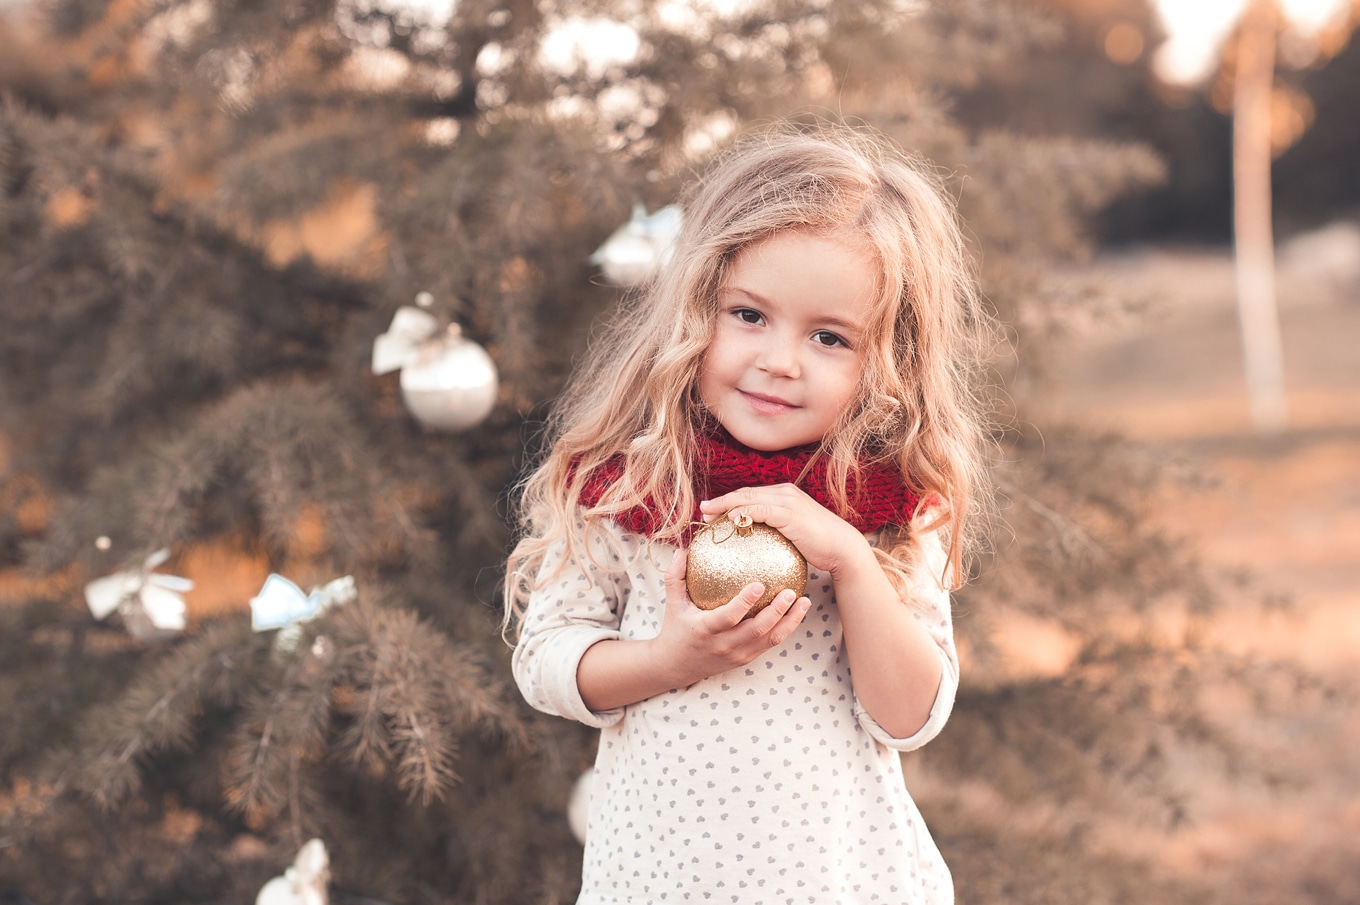 As we are bombarded by advertisements and wish lists this time of year, it can be difficult to stay focused on what really matters.The best holiday gifts for children—the gifts kids really want for Christmas—require no wrapping paper, ribbons, or money. But they do require a substantial investment.